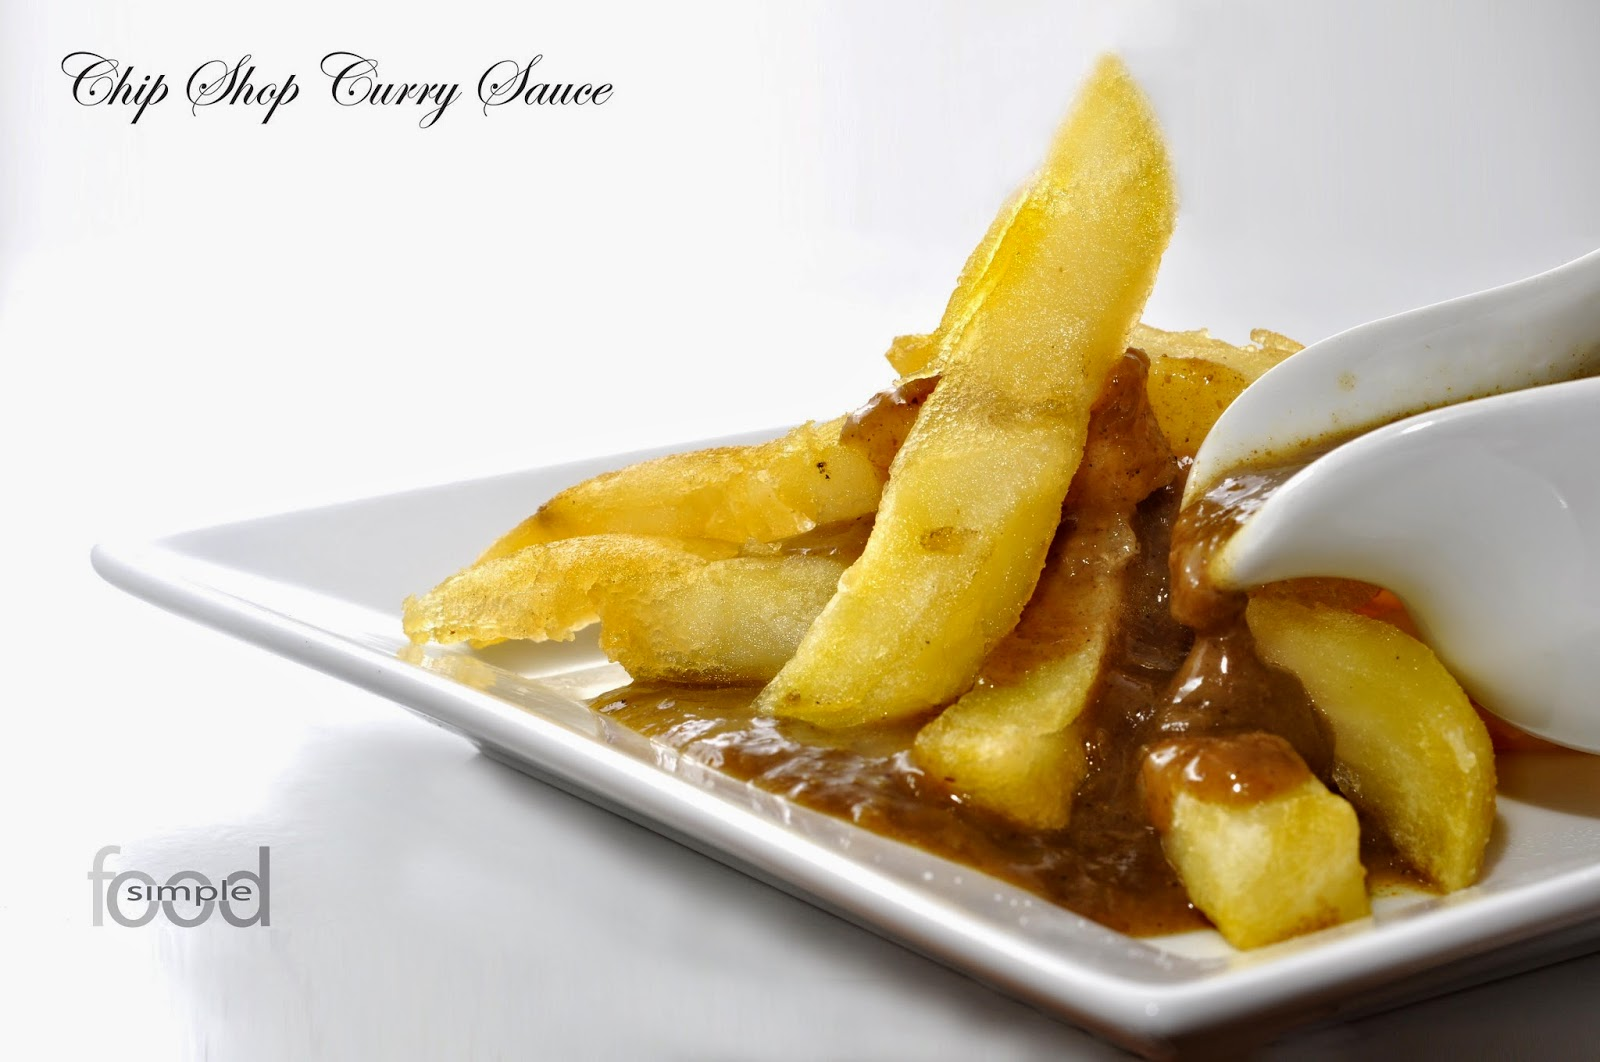 Chip Shop Curry Sauce ~ Simple Food